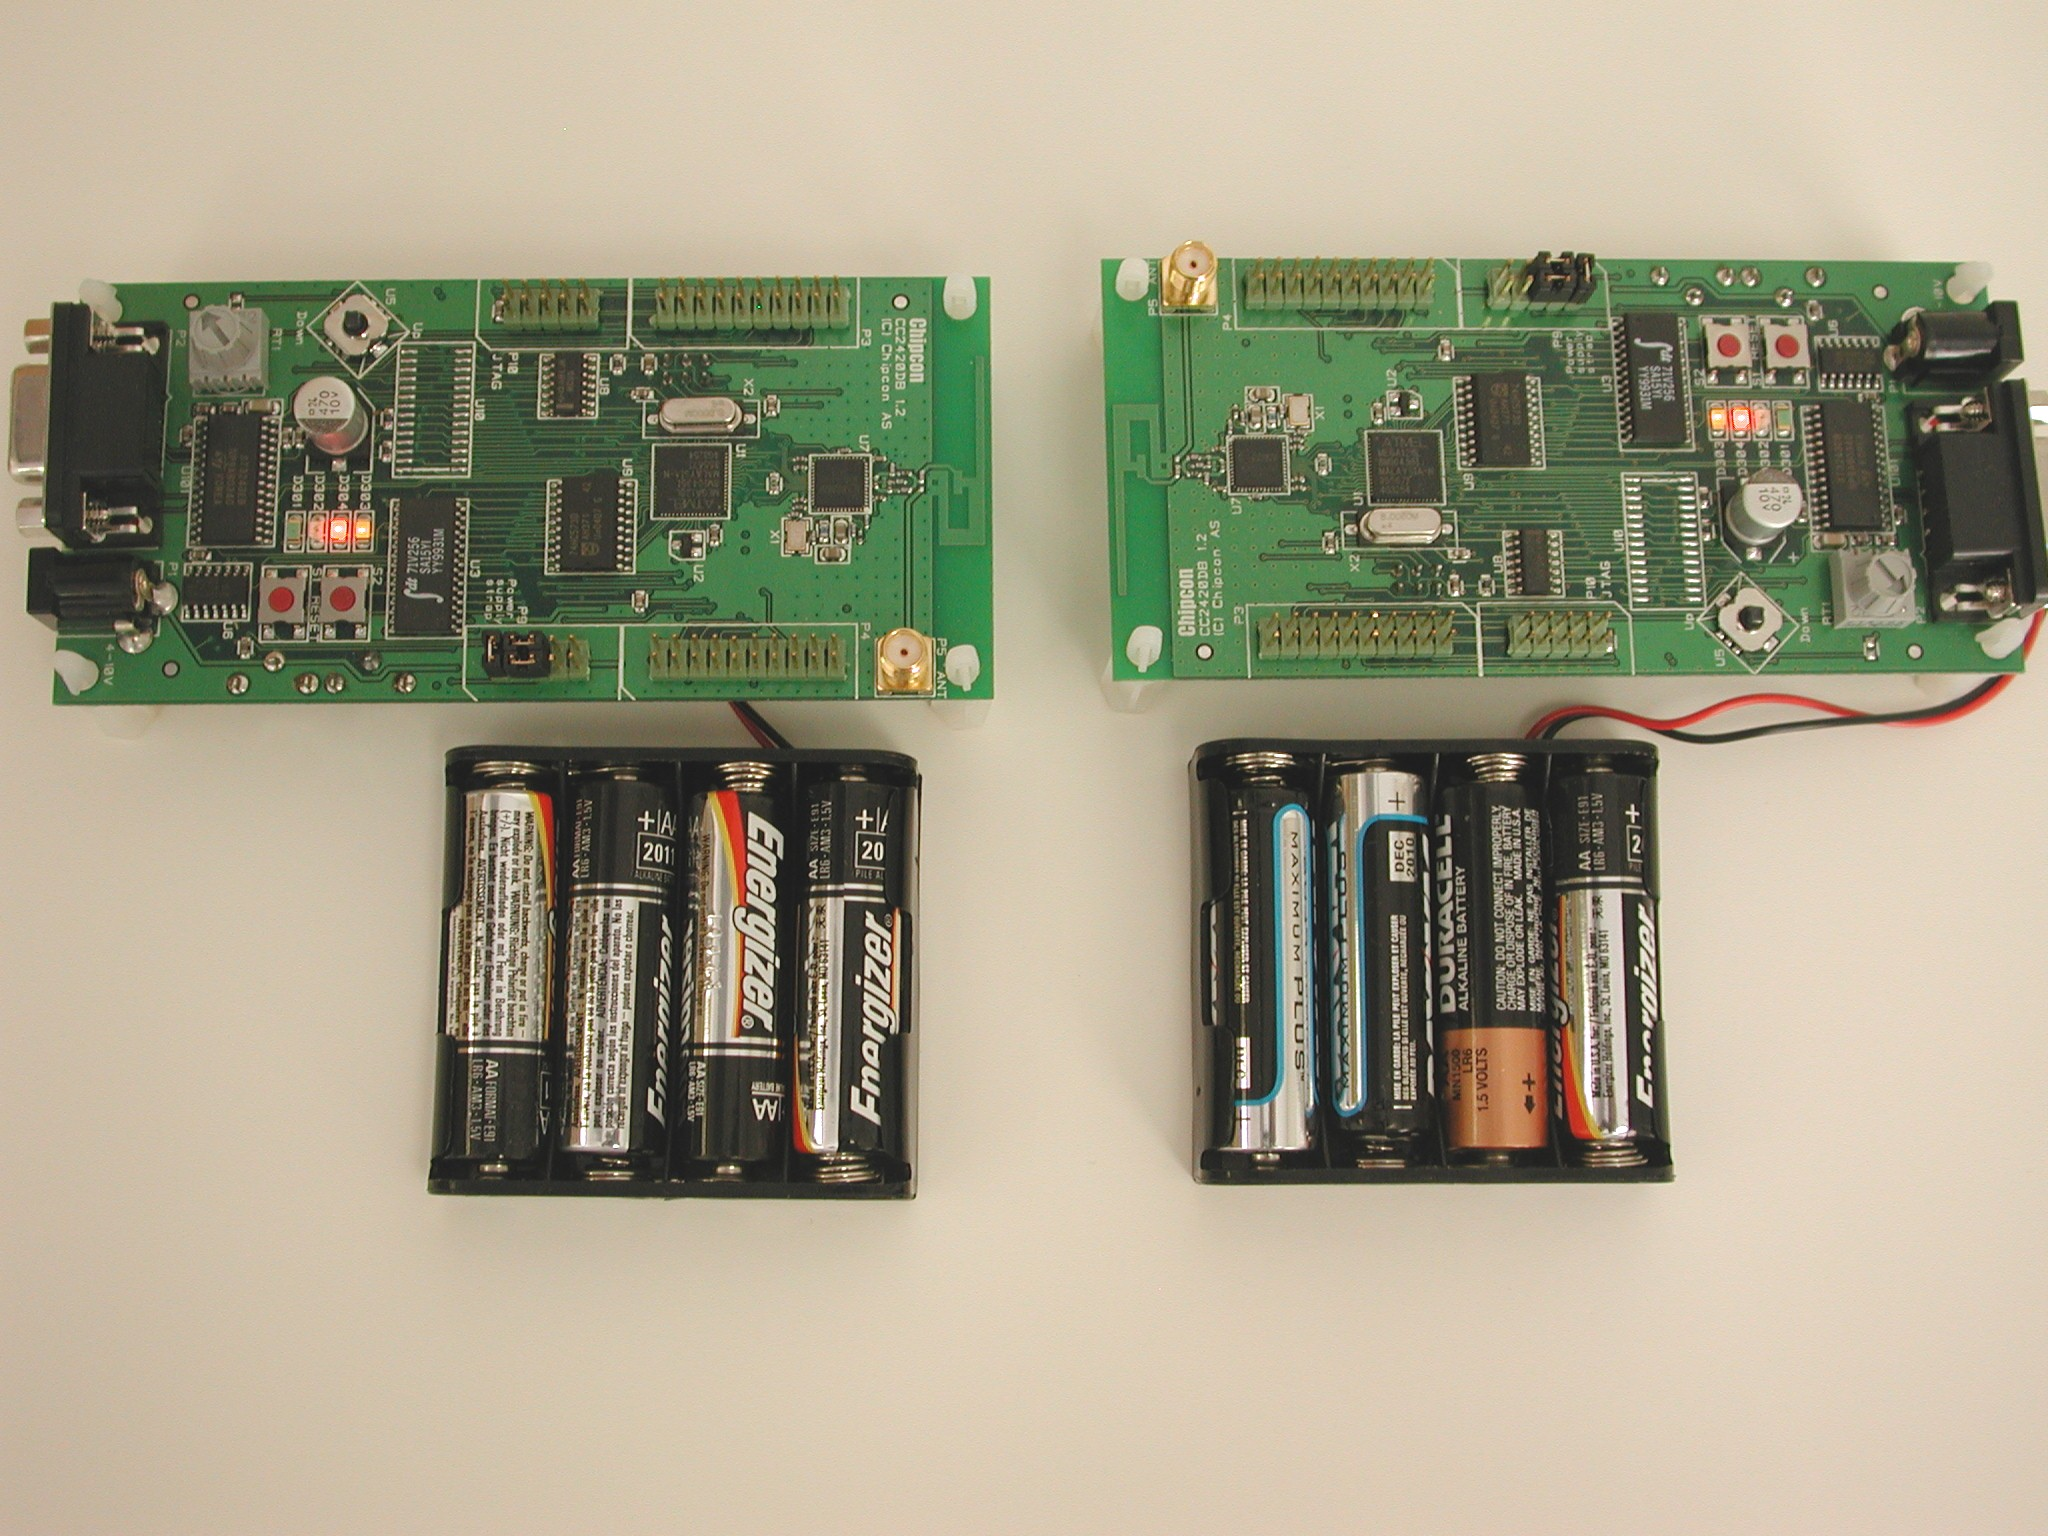 Boards with antennas facing eachother